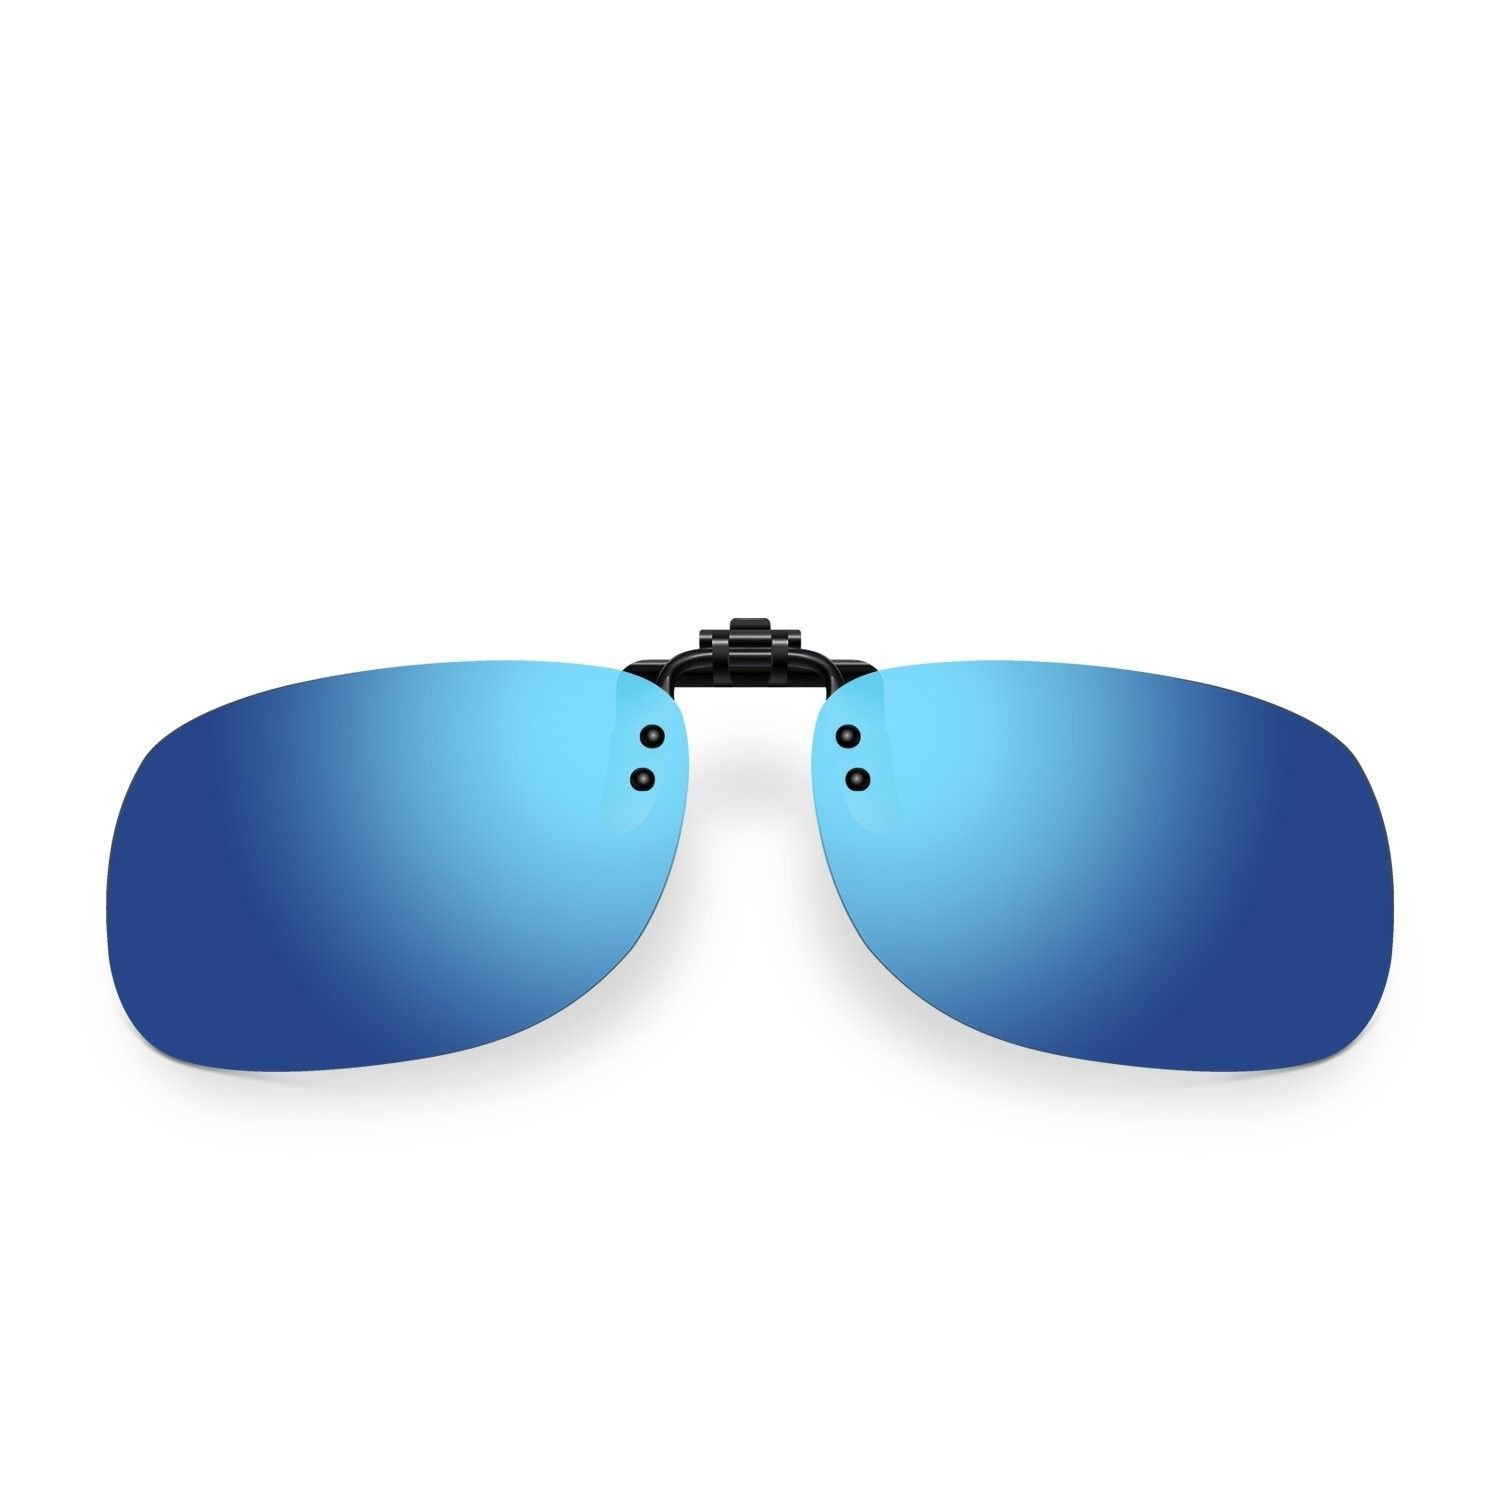 6c37ba08263 Polarized Clip-on Flip up Plastic Sunglasses Lenses Glasses Outdoor Driving  Fishing Cycling - Ice Blue - CH1833QQ898-Women s Sunglasses